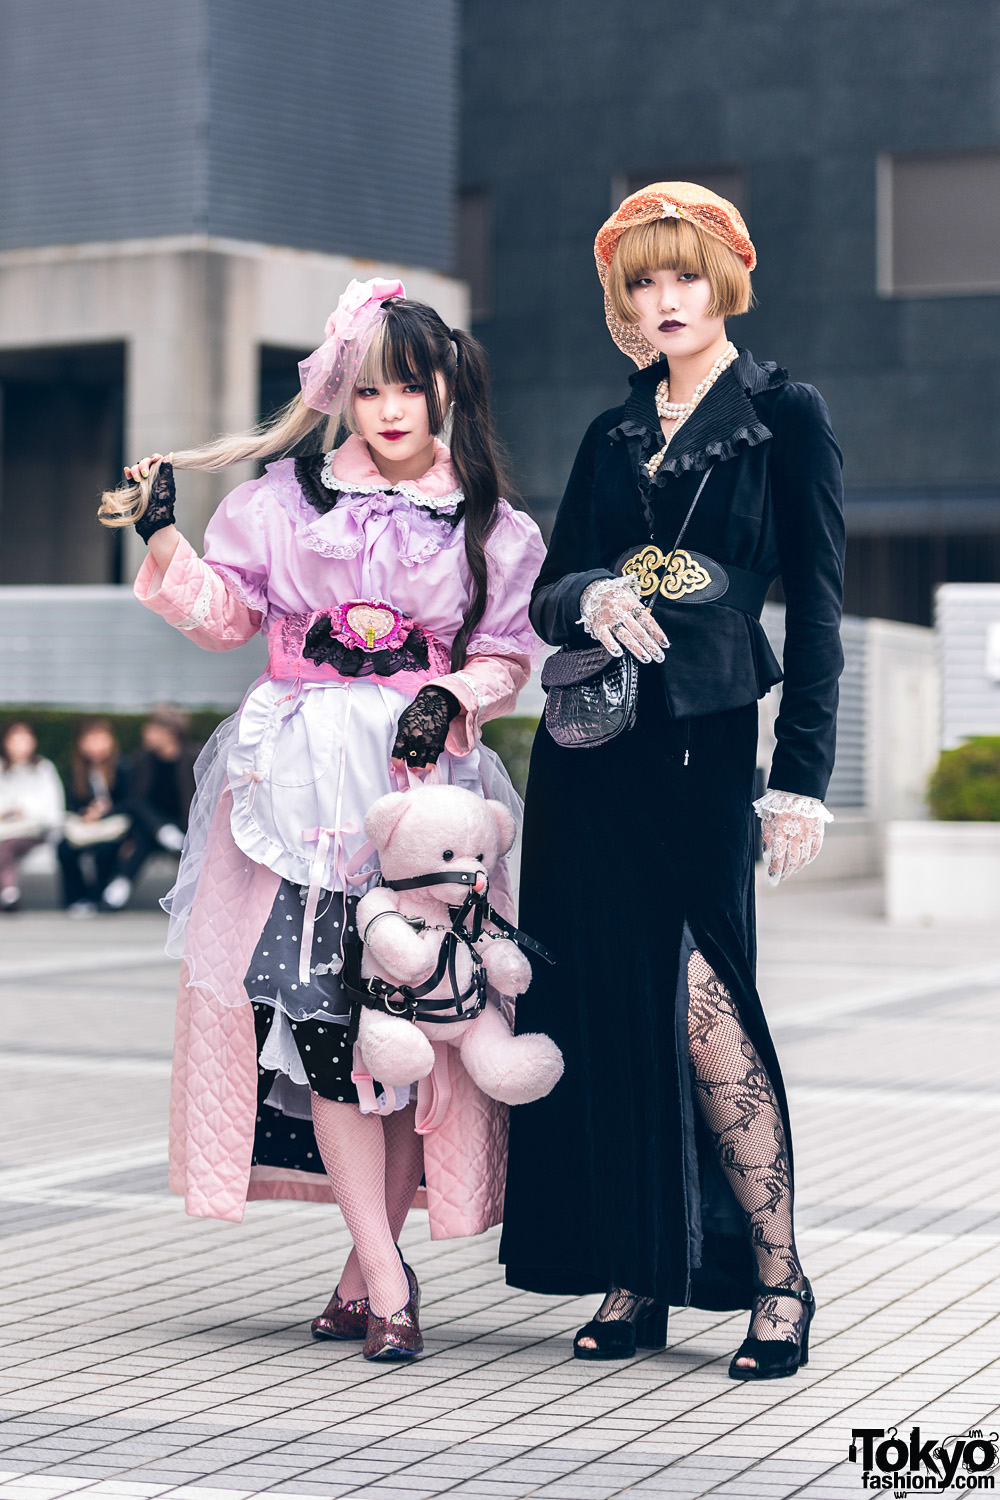 Bunka Fashion College Students' Street Styles w/ Lace Headdress, Birdcage Veil Hat, Lace Gloves, Teddy Bear Backpack, Panama Boy, Slit Skirt, Himiko & Irregular Choice Shoes